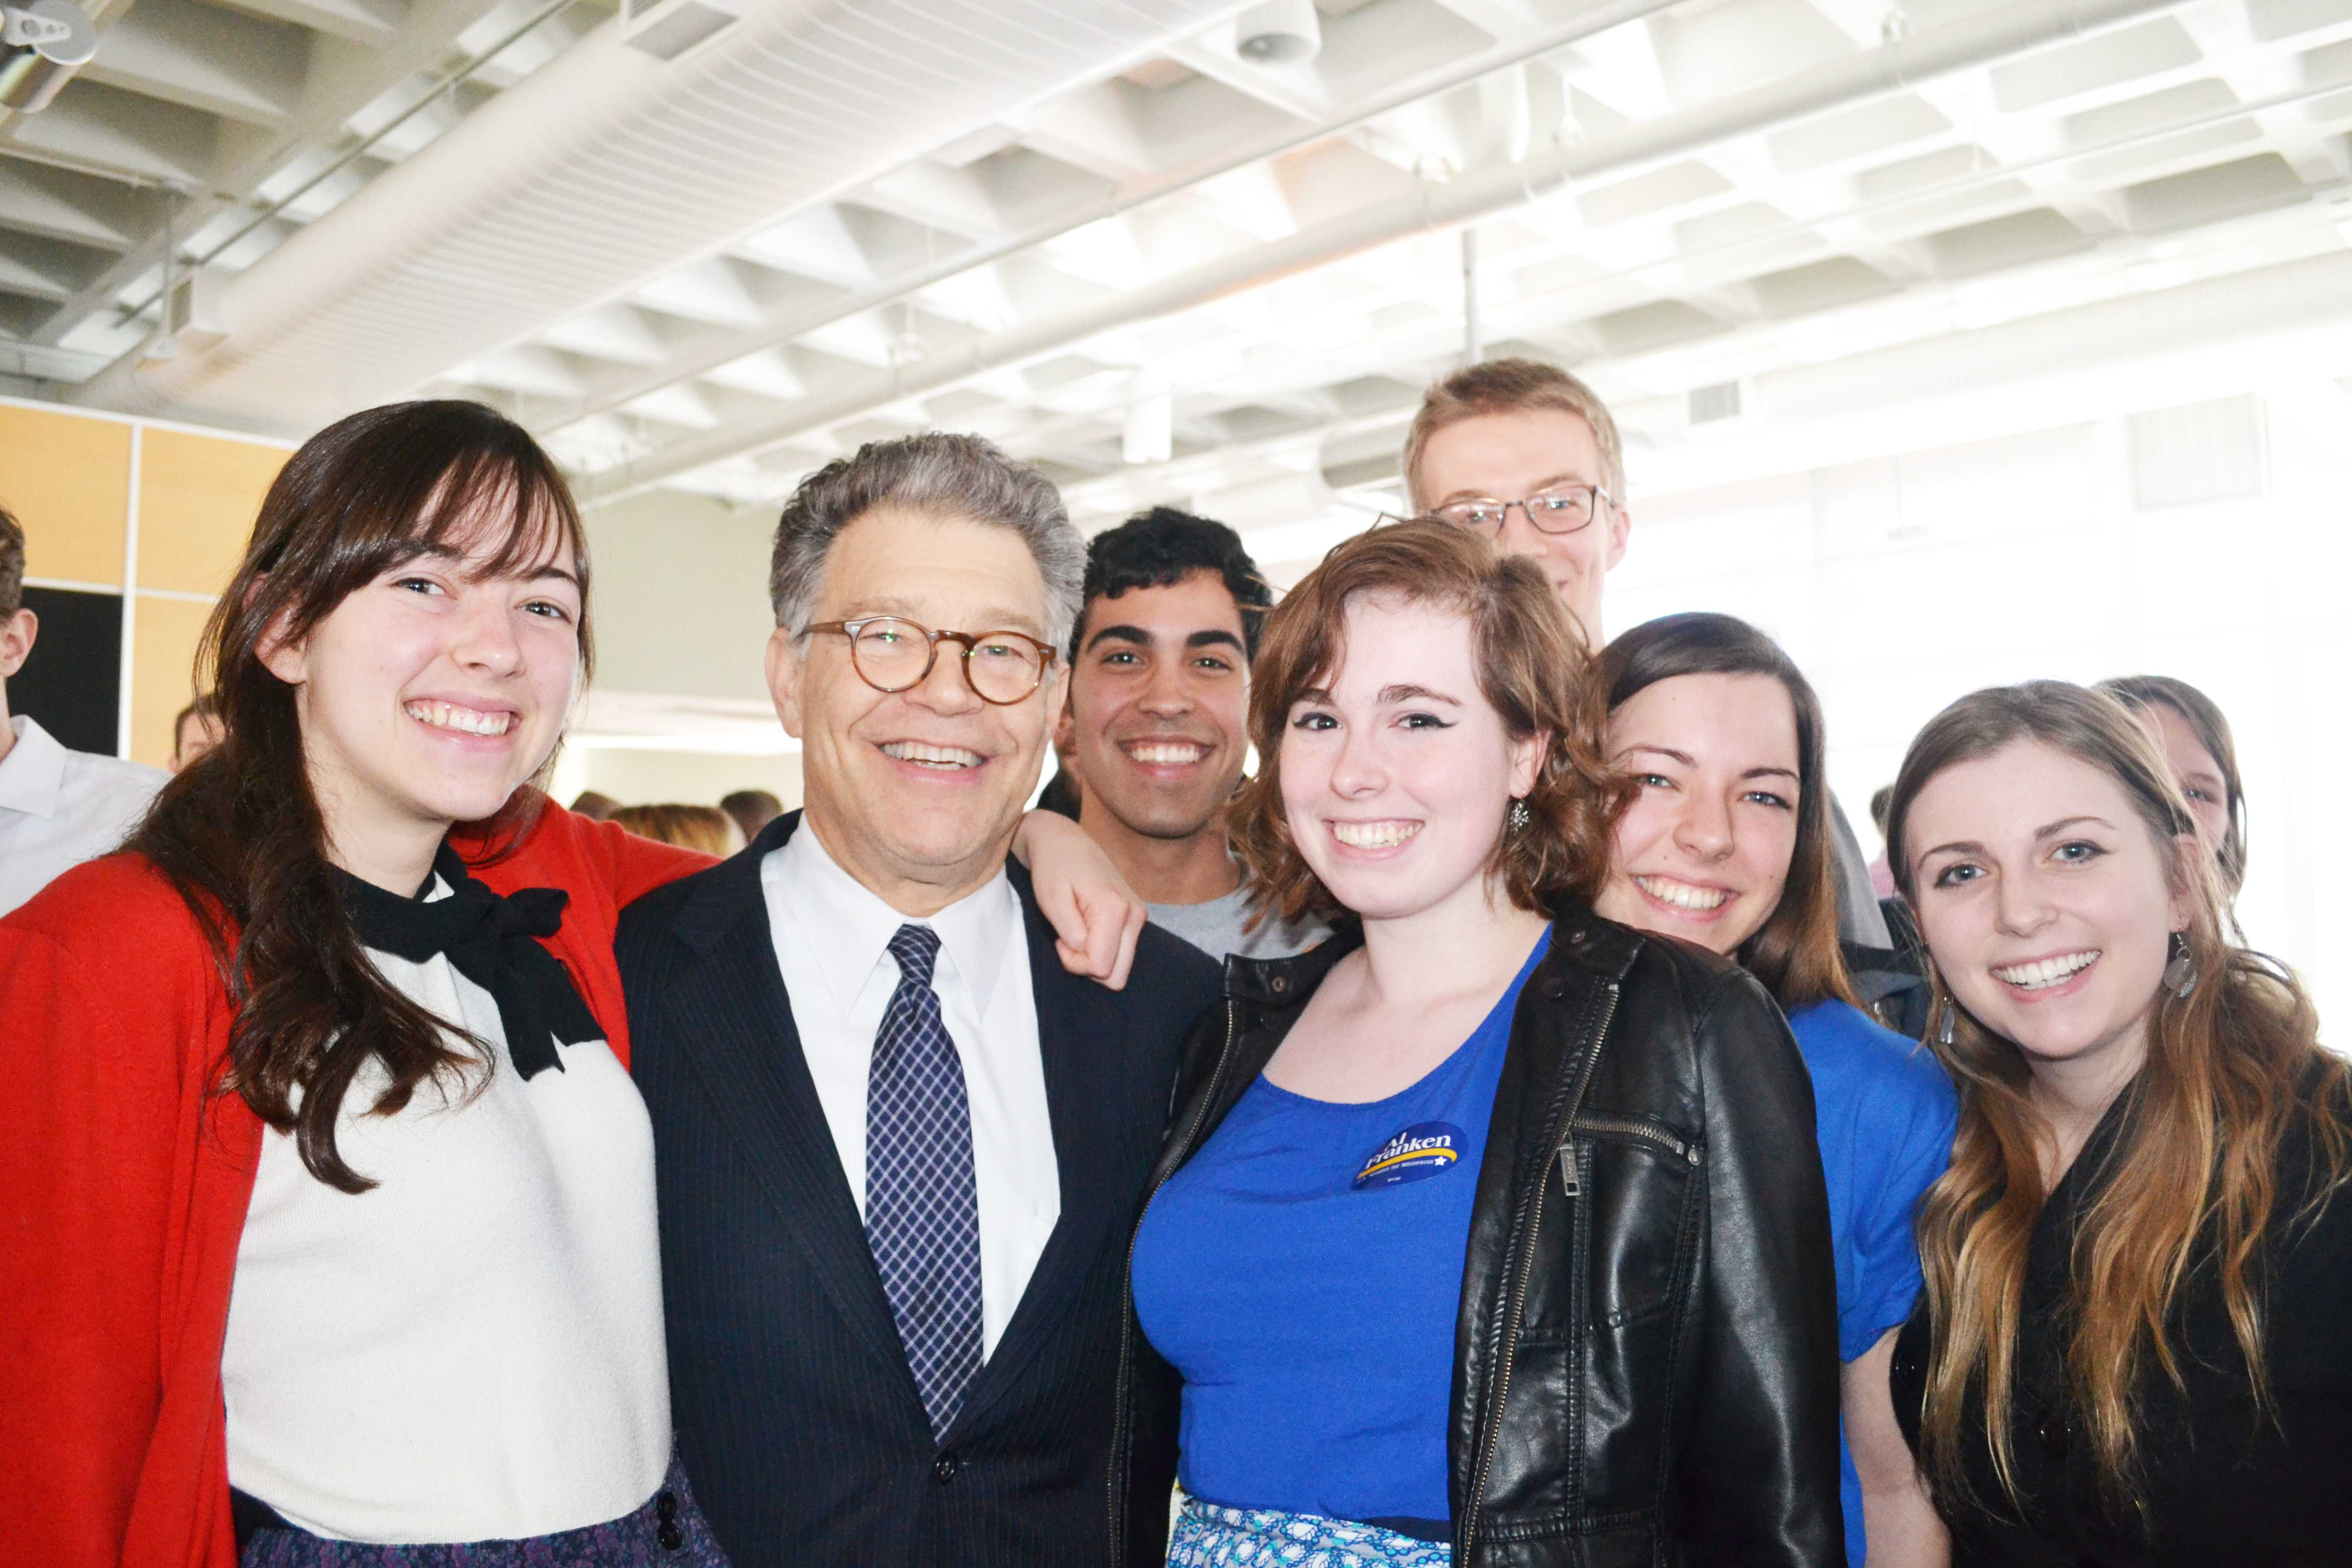 Macalester students meet with Sen. Al Franken after the event. Photos by Maddie Jaffe '17